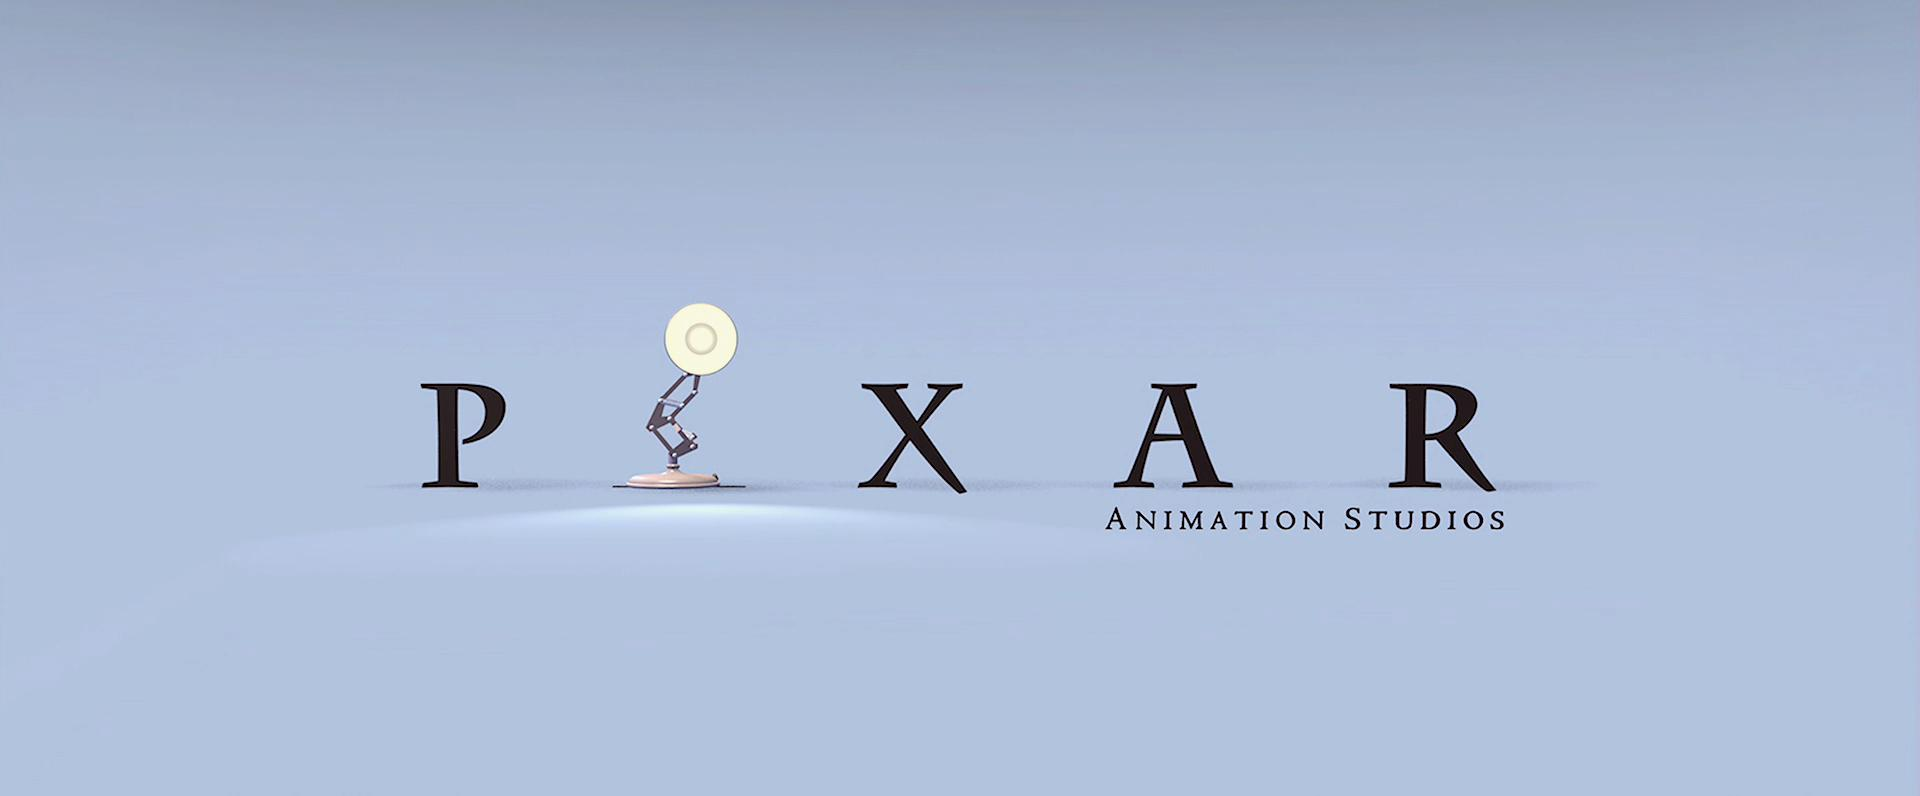 Pixar animation studios entertainer of the decade